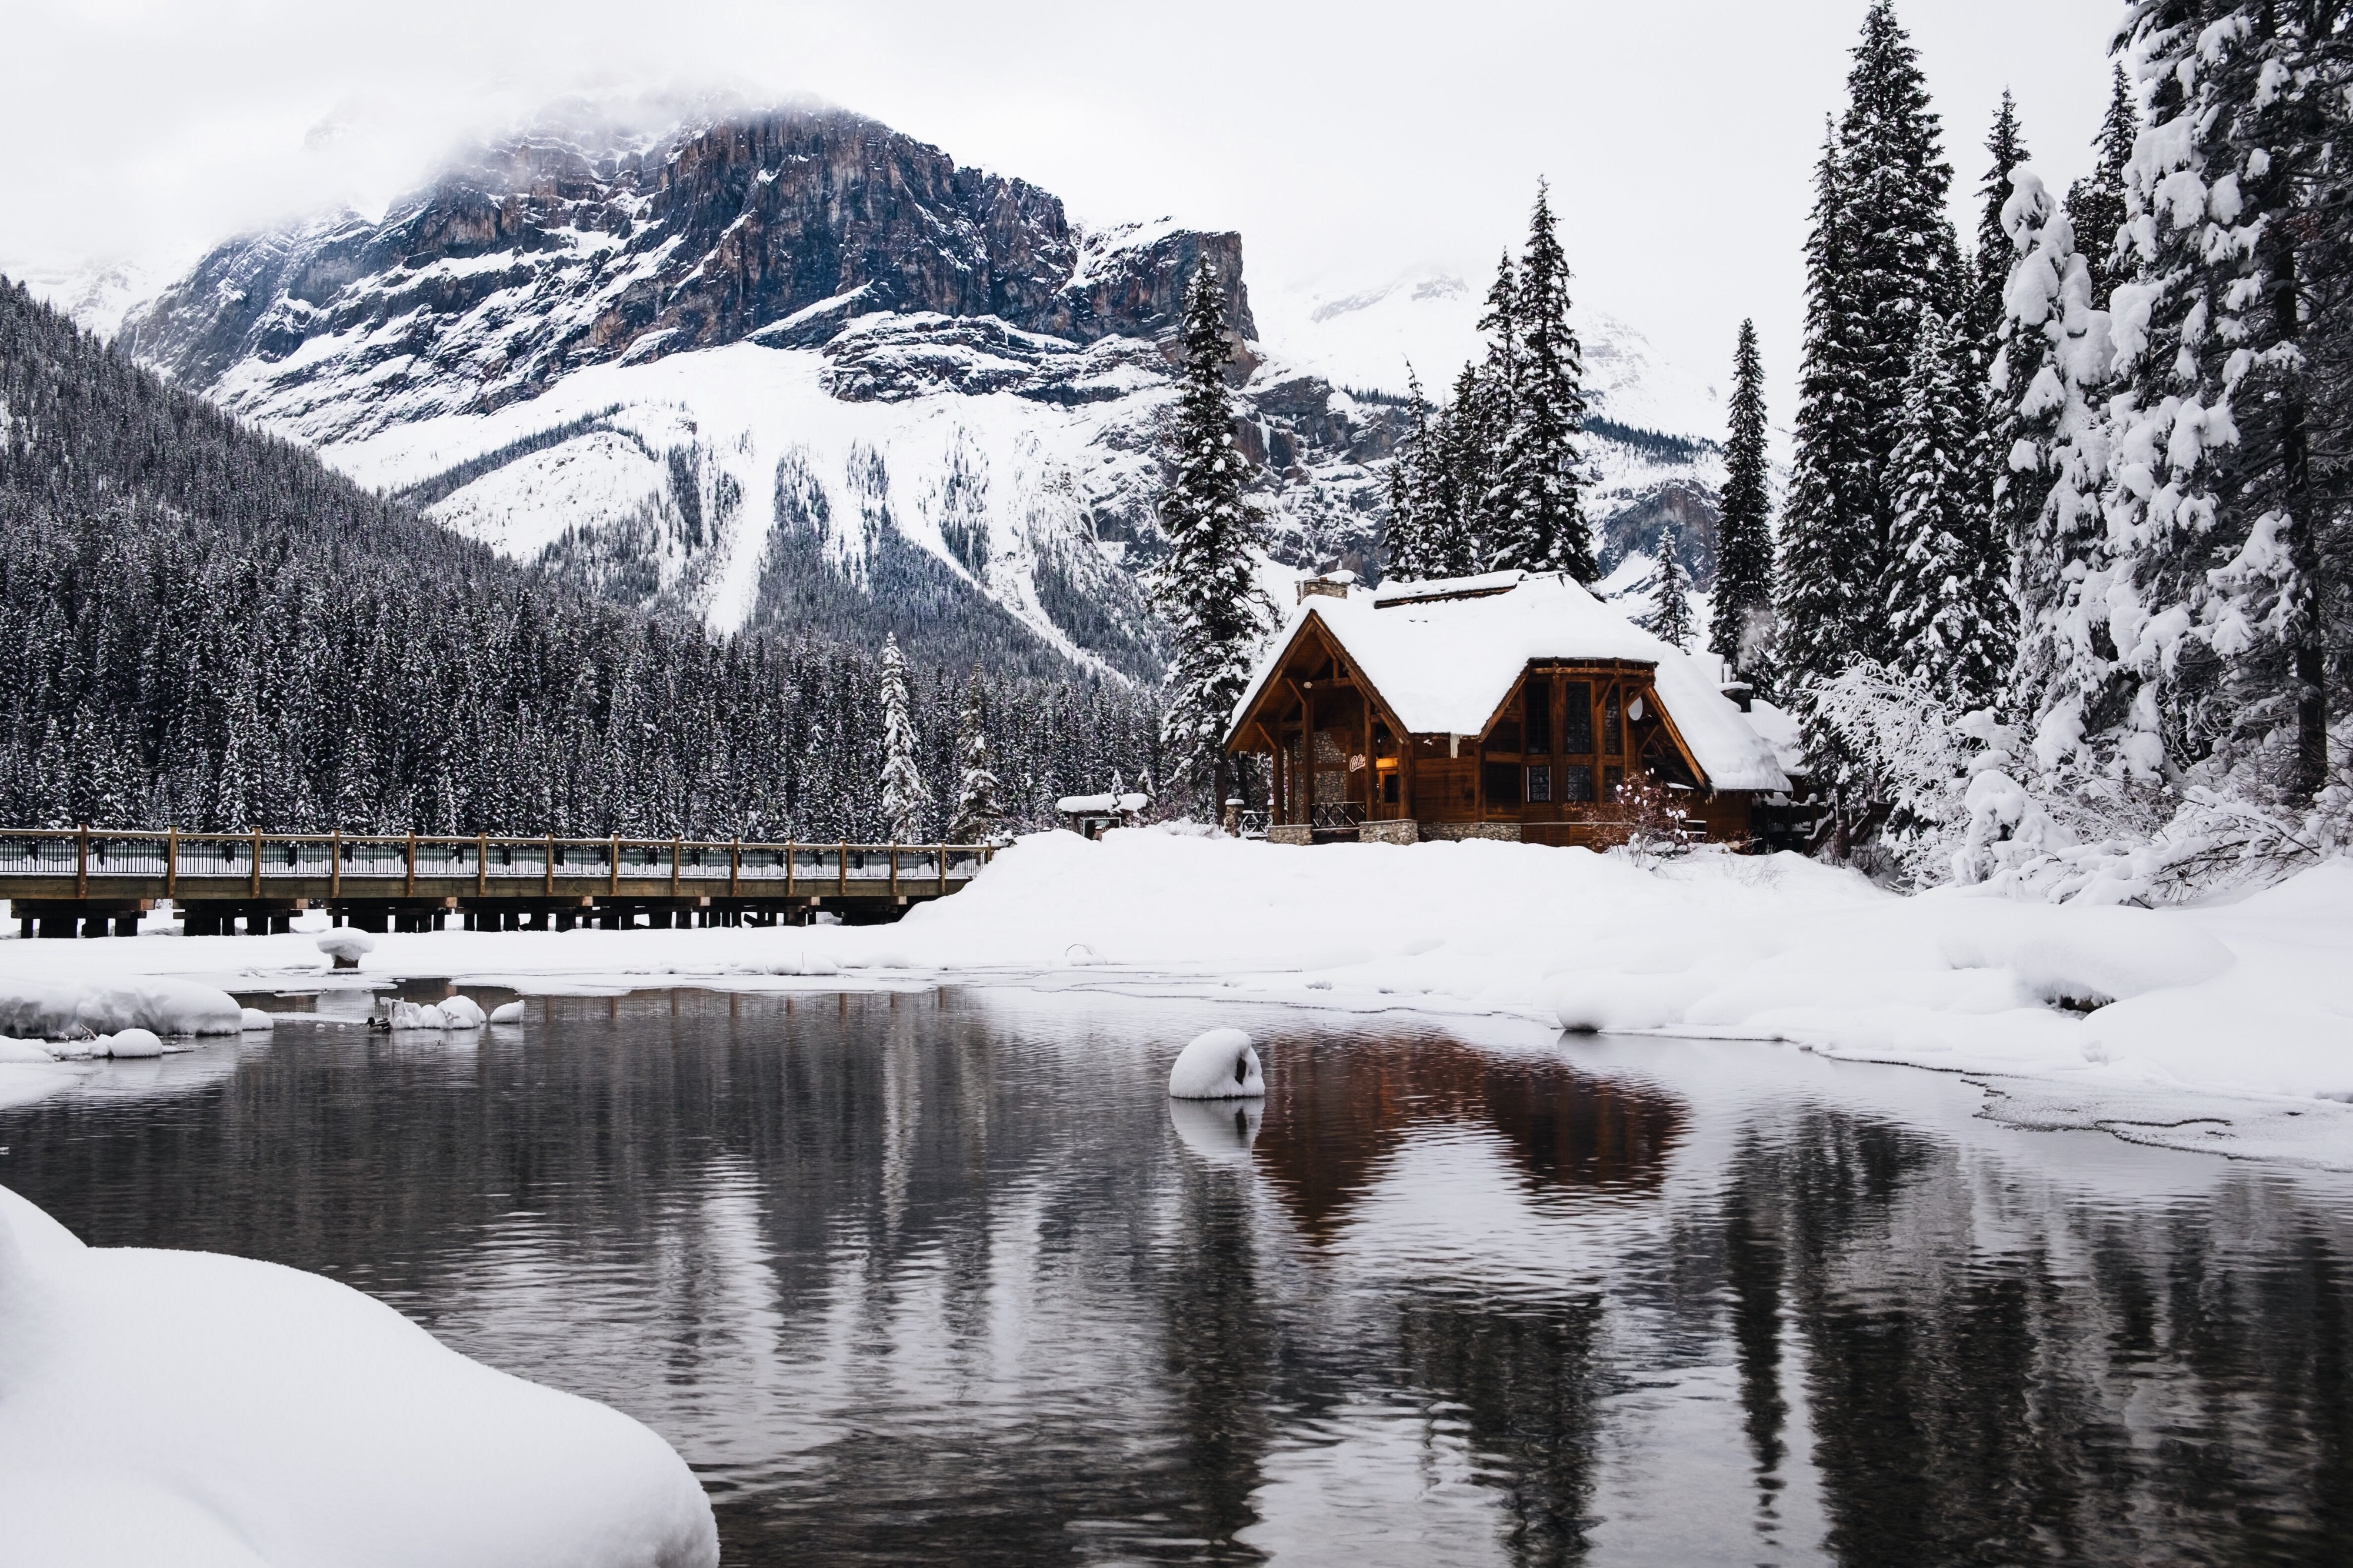 Stopping By A Snowy Mountain House On A Quiet Evening By Tom Belskie Tom Thoughts Medium